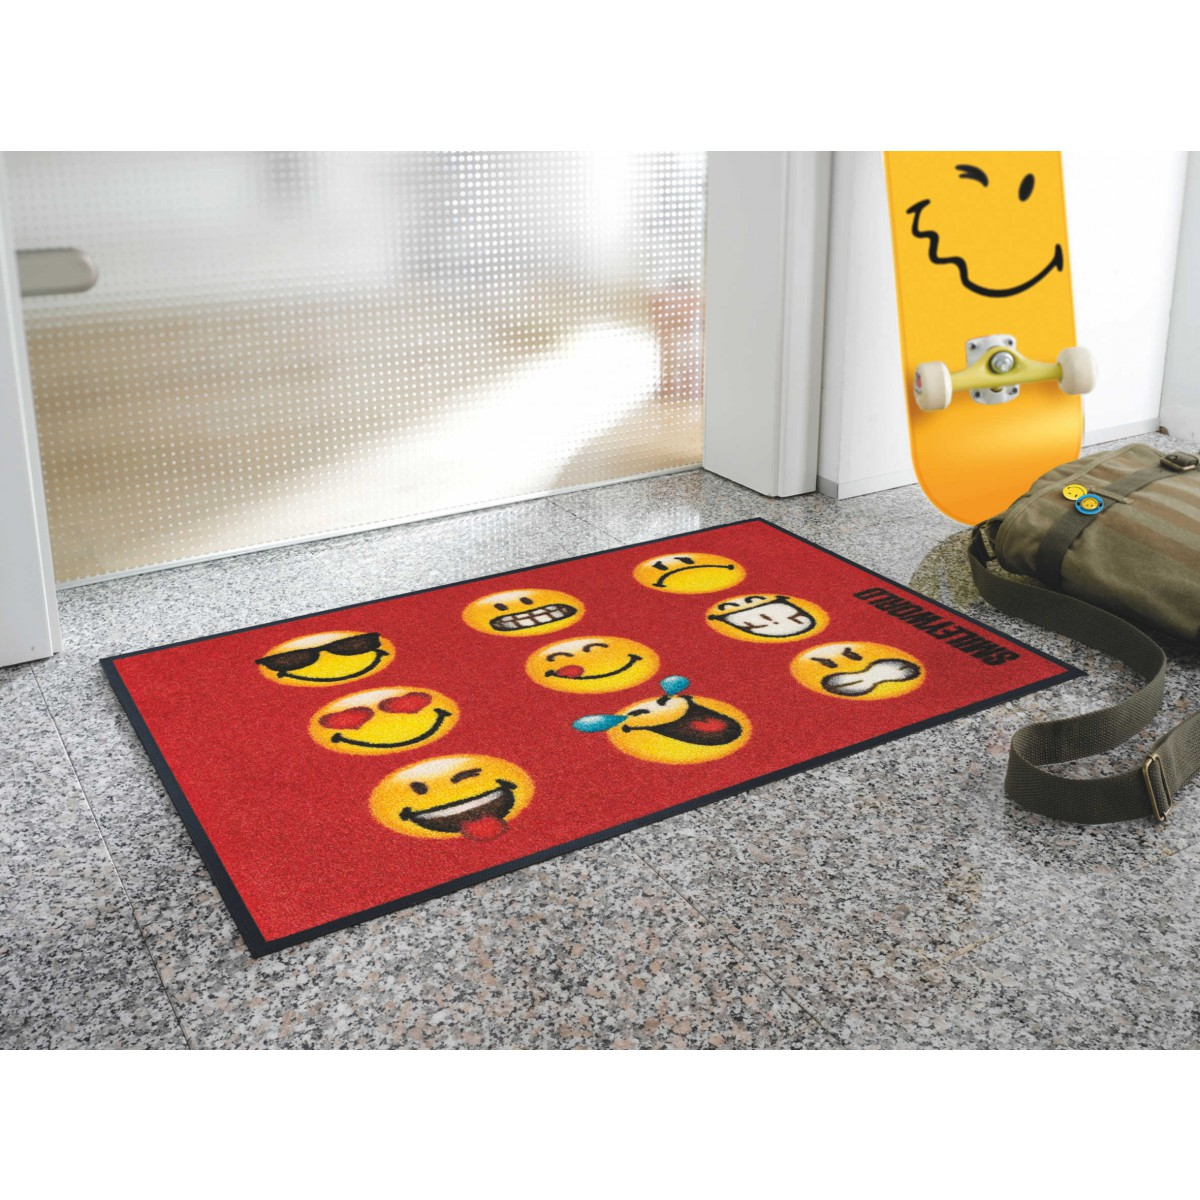 Wash dry teppich kinderzimmer smiley faces kaufen mattenkiste - Teppich wash and dry ...